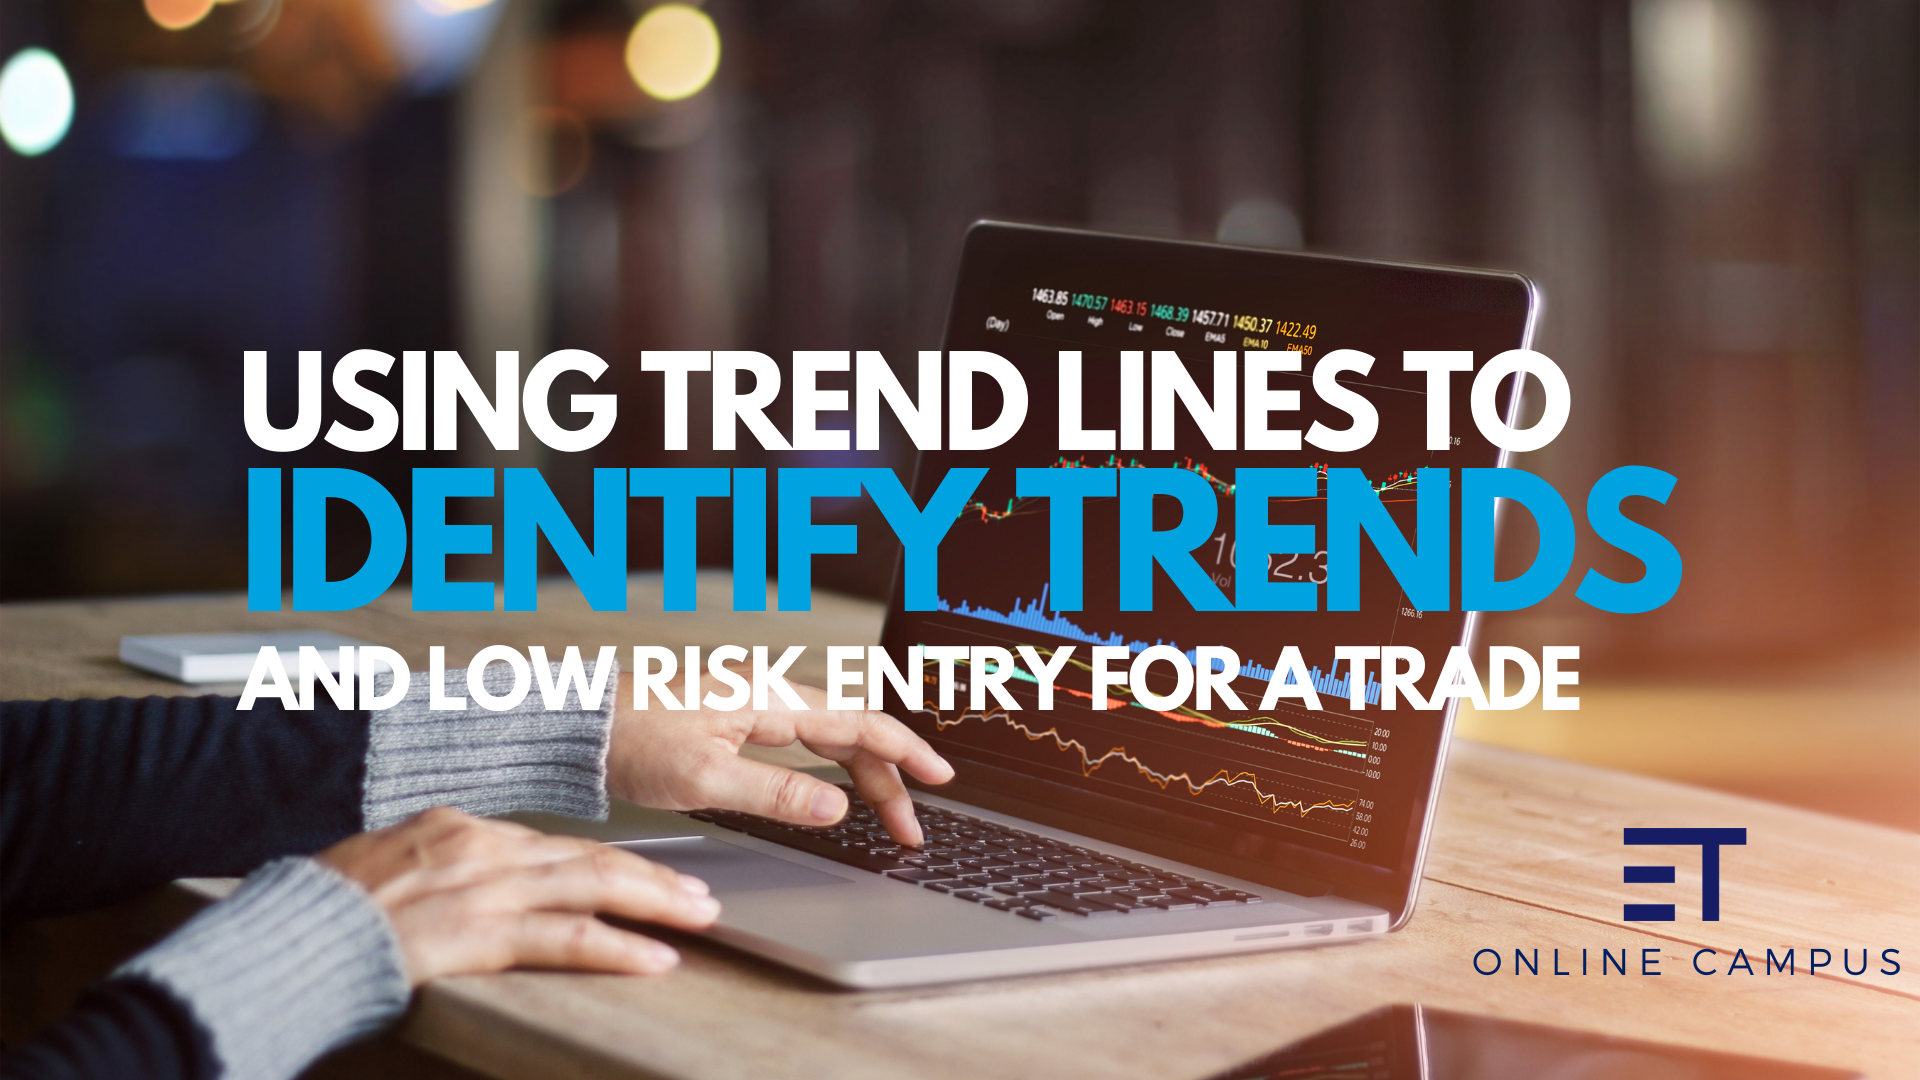 How to use trend lines to identify trends and low-risk entry for a trade